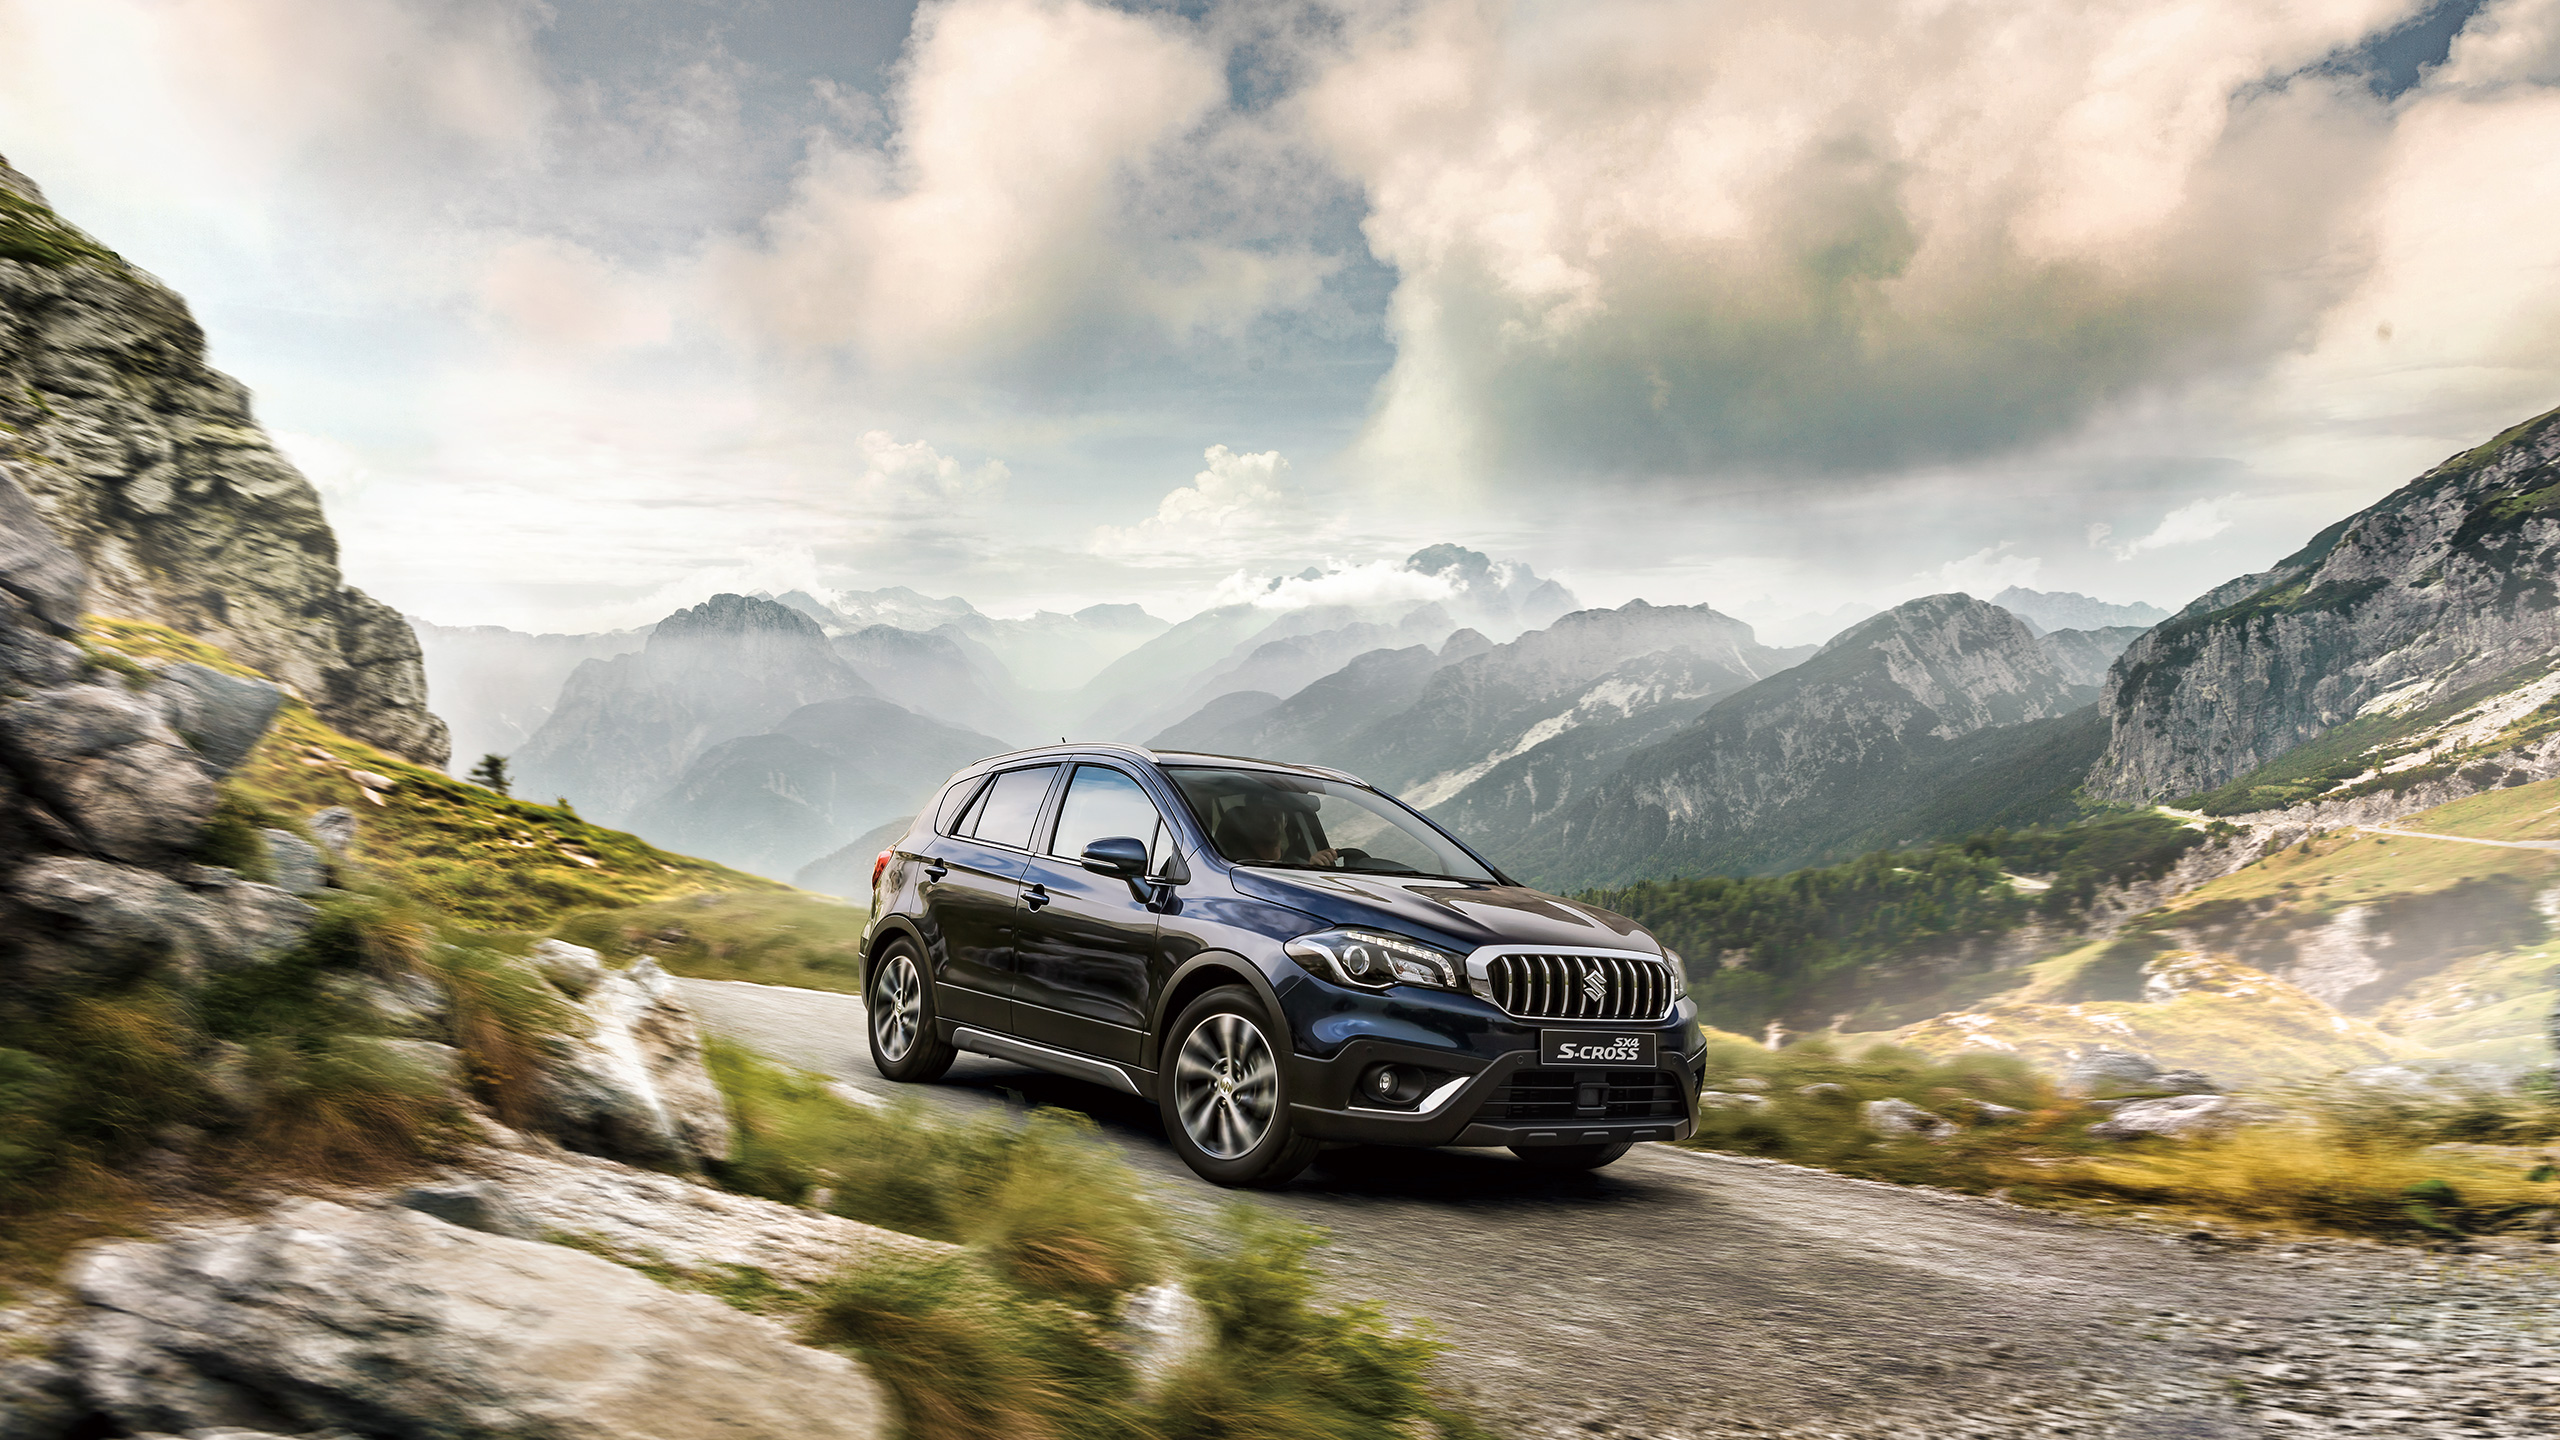 SX4-S-CROSS-driving-on-rough-road-in-mountains